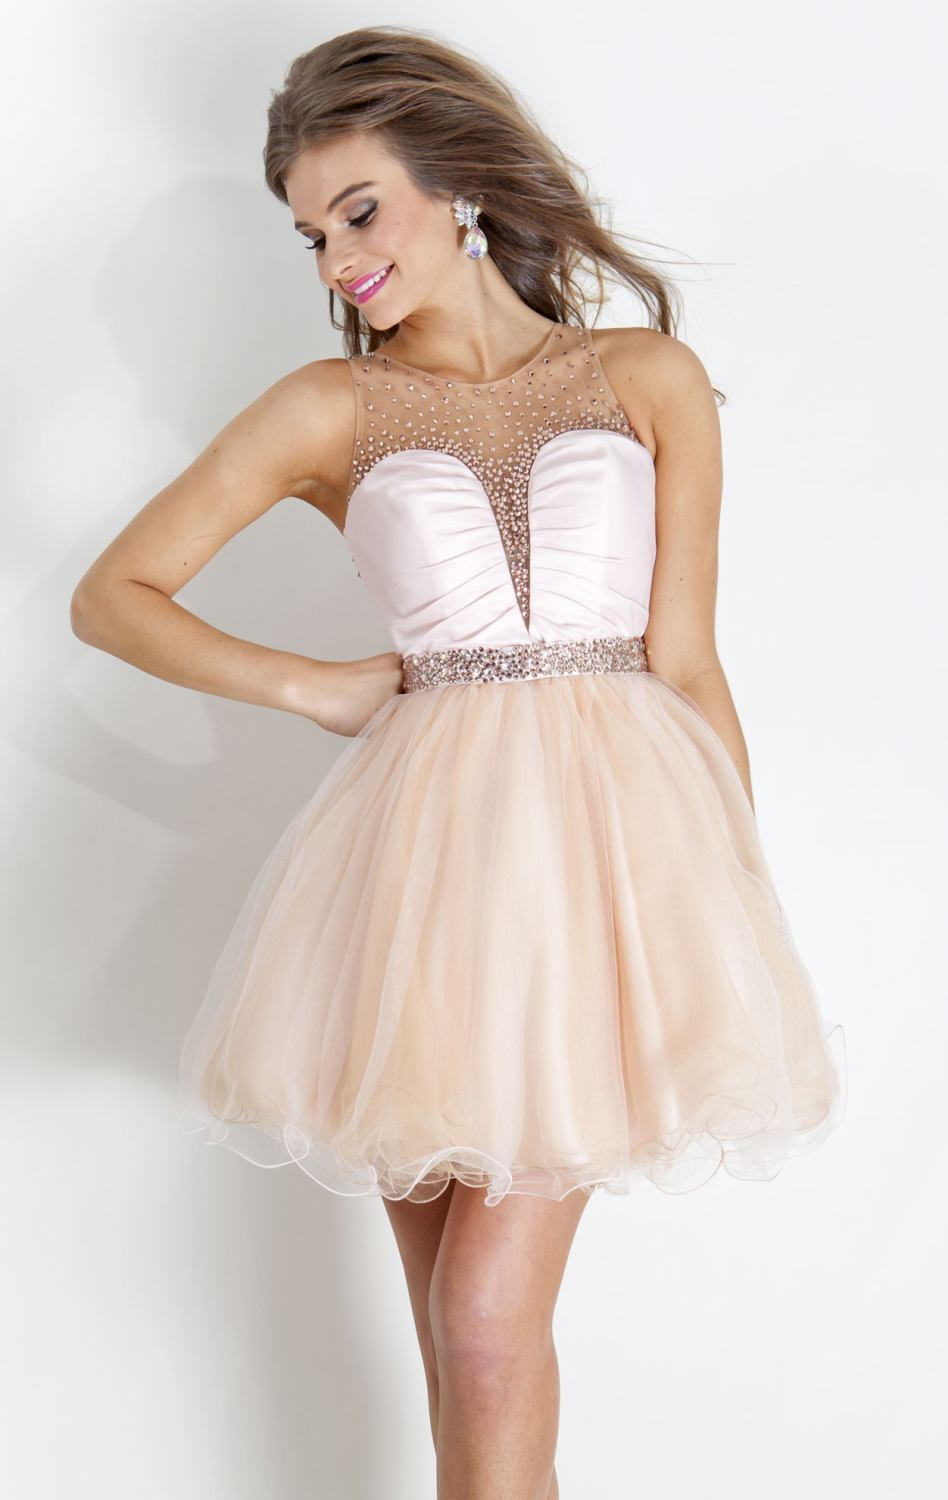 8th Grade Girls Prom Dresses – Fashion dresses